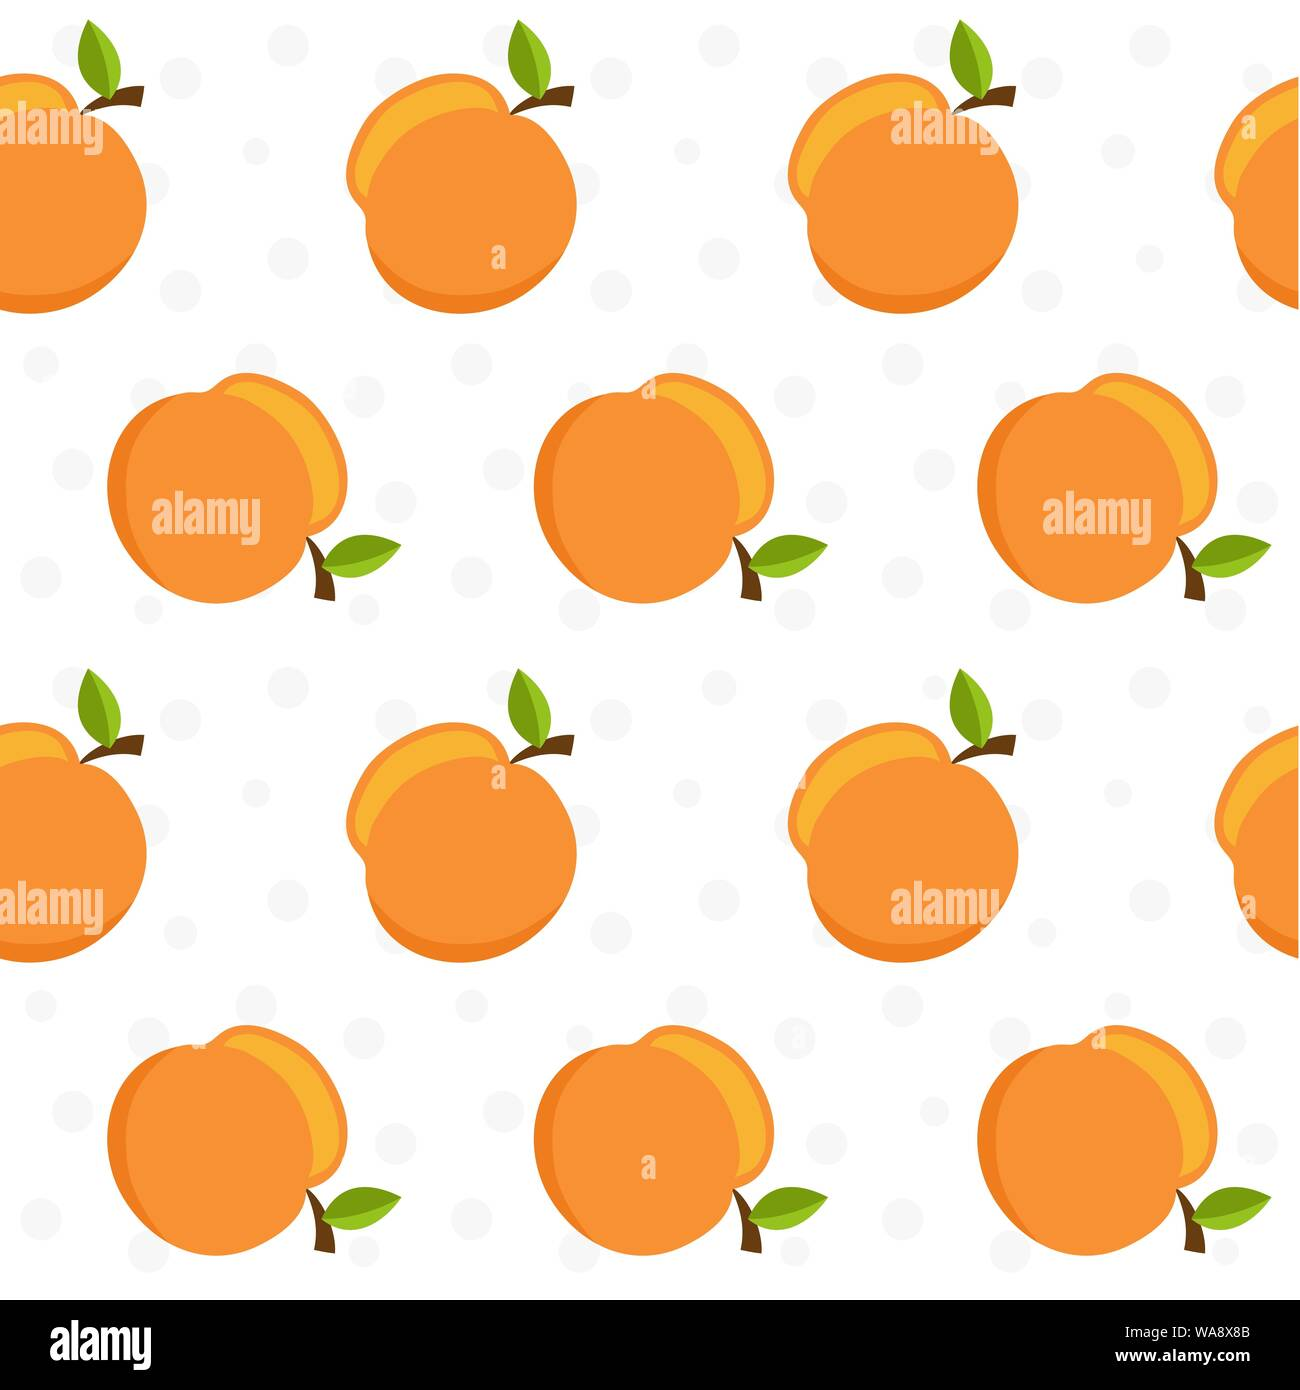 vector seamless pattern with peach fresh fruit background stock vector image art alamy https www alamy com vector seamless pattern with peach fresh fruit background image264498315 html